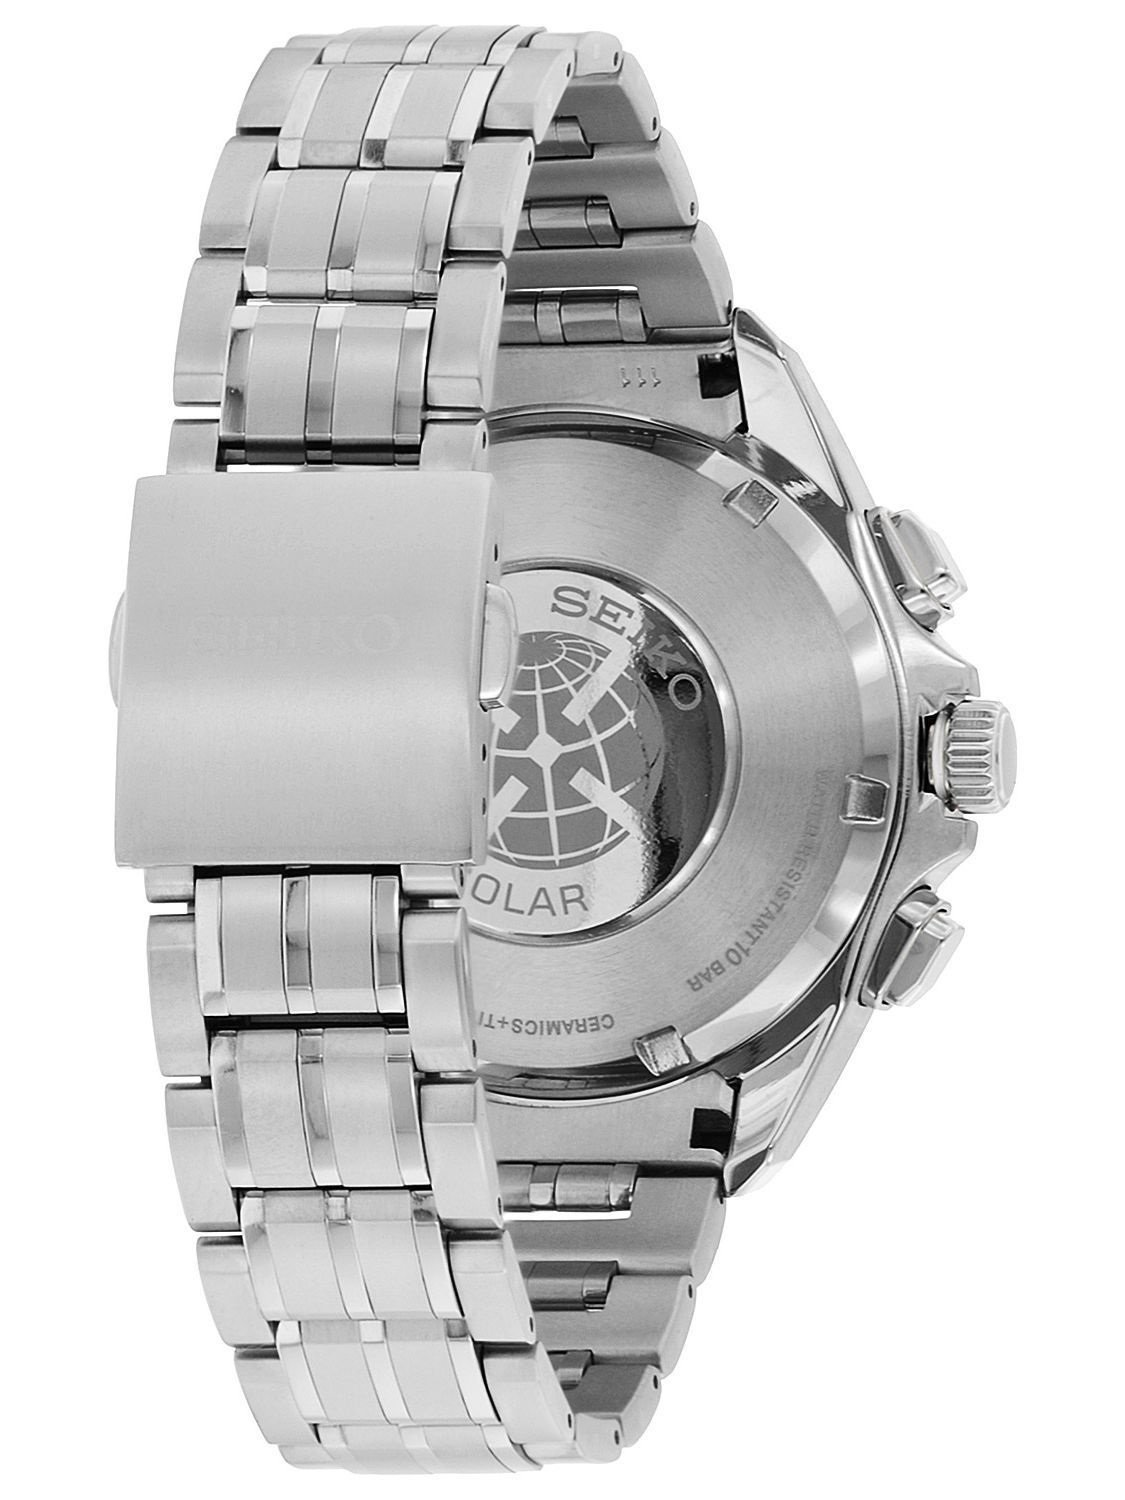 BRACELET Astron GPS Chronograph FIT Seiko SSE005,SSE007 ,SSE003 by Unknown